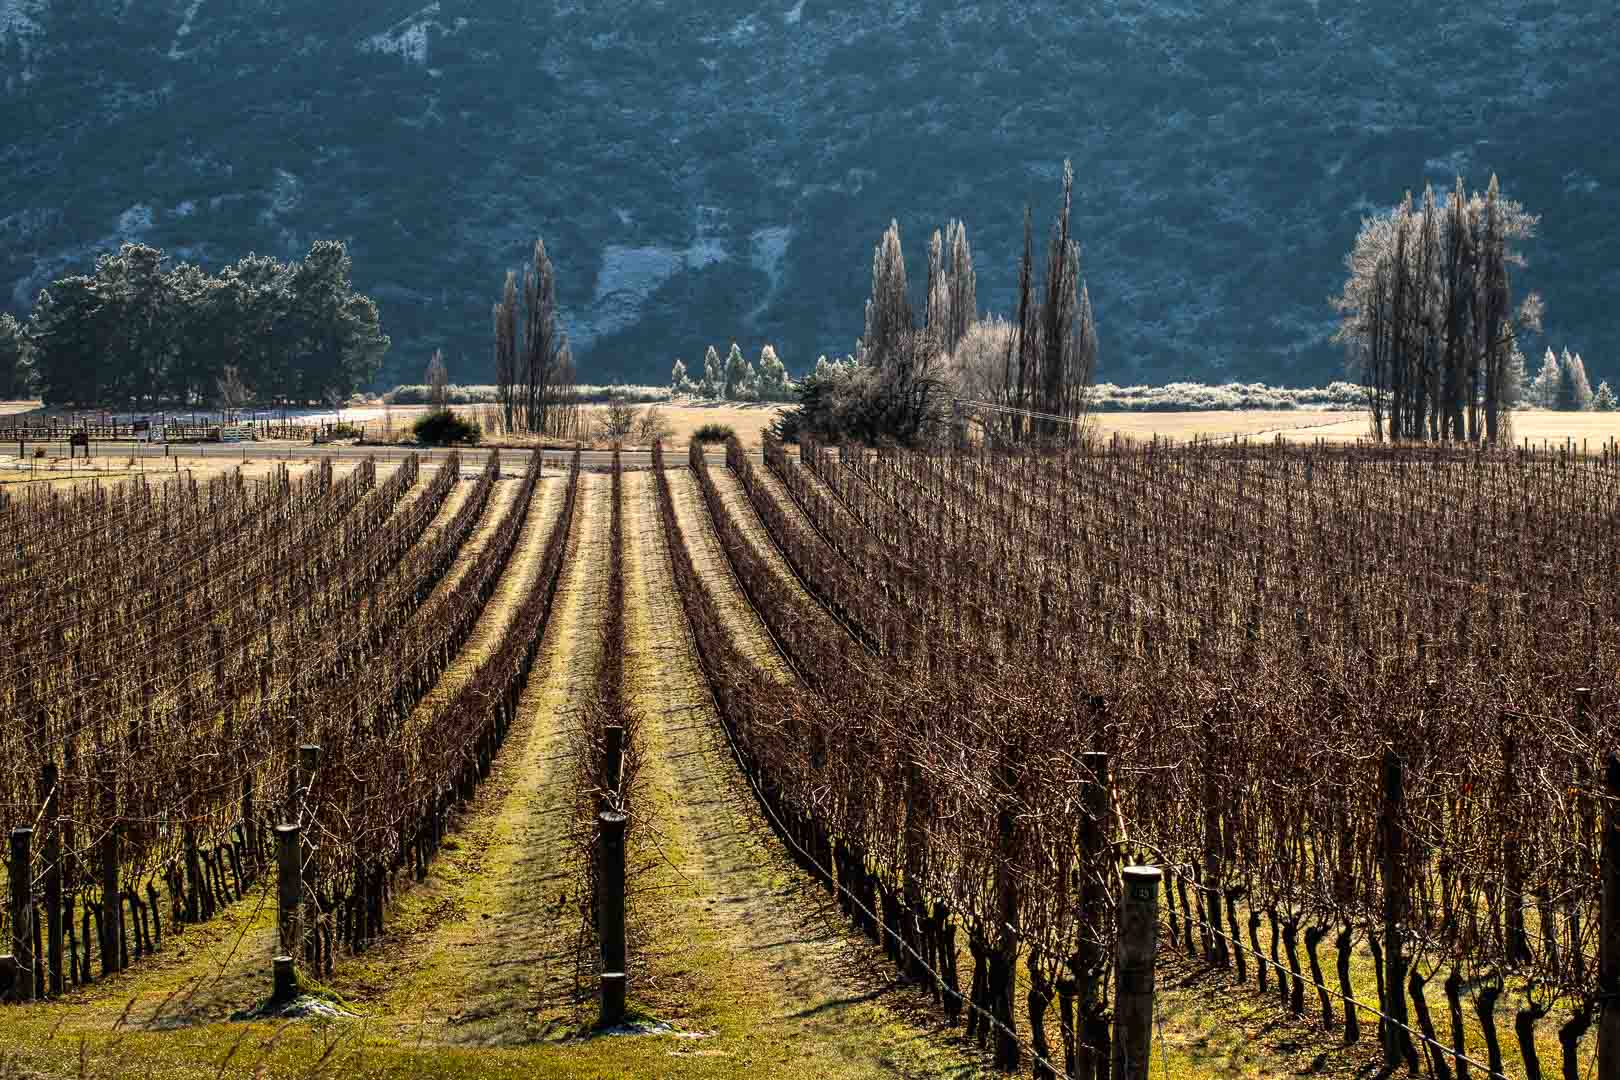 Resultado de imagen de central otago wine region new zealand